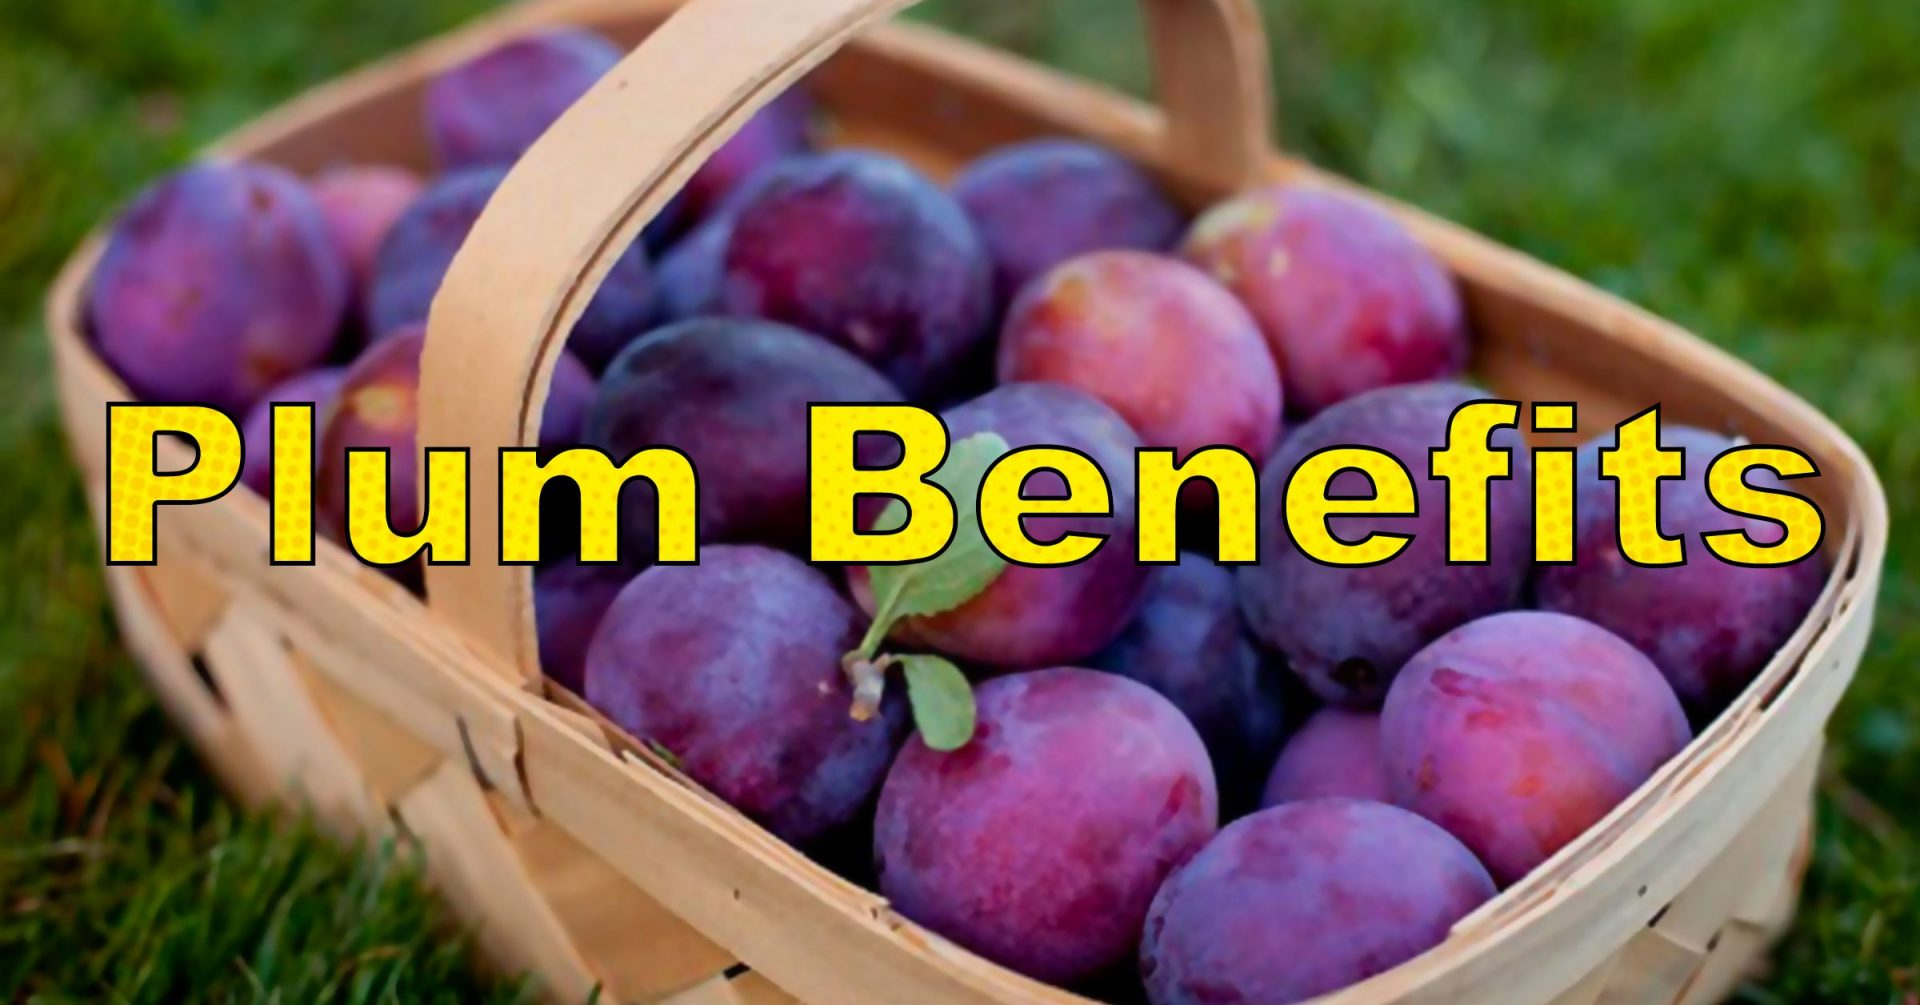 Plum Benefits - Health and Wellness